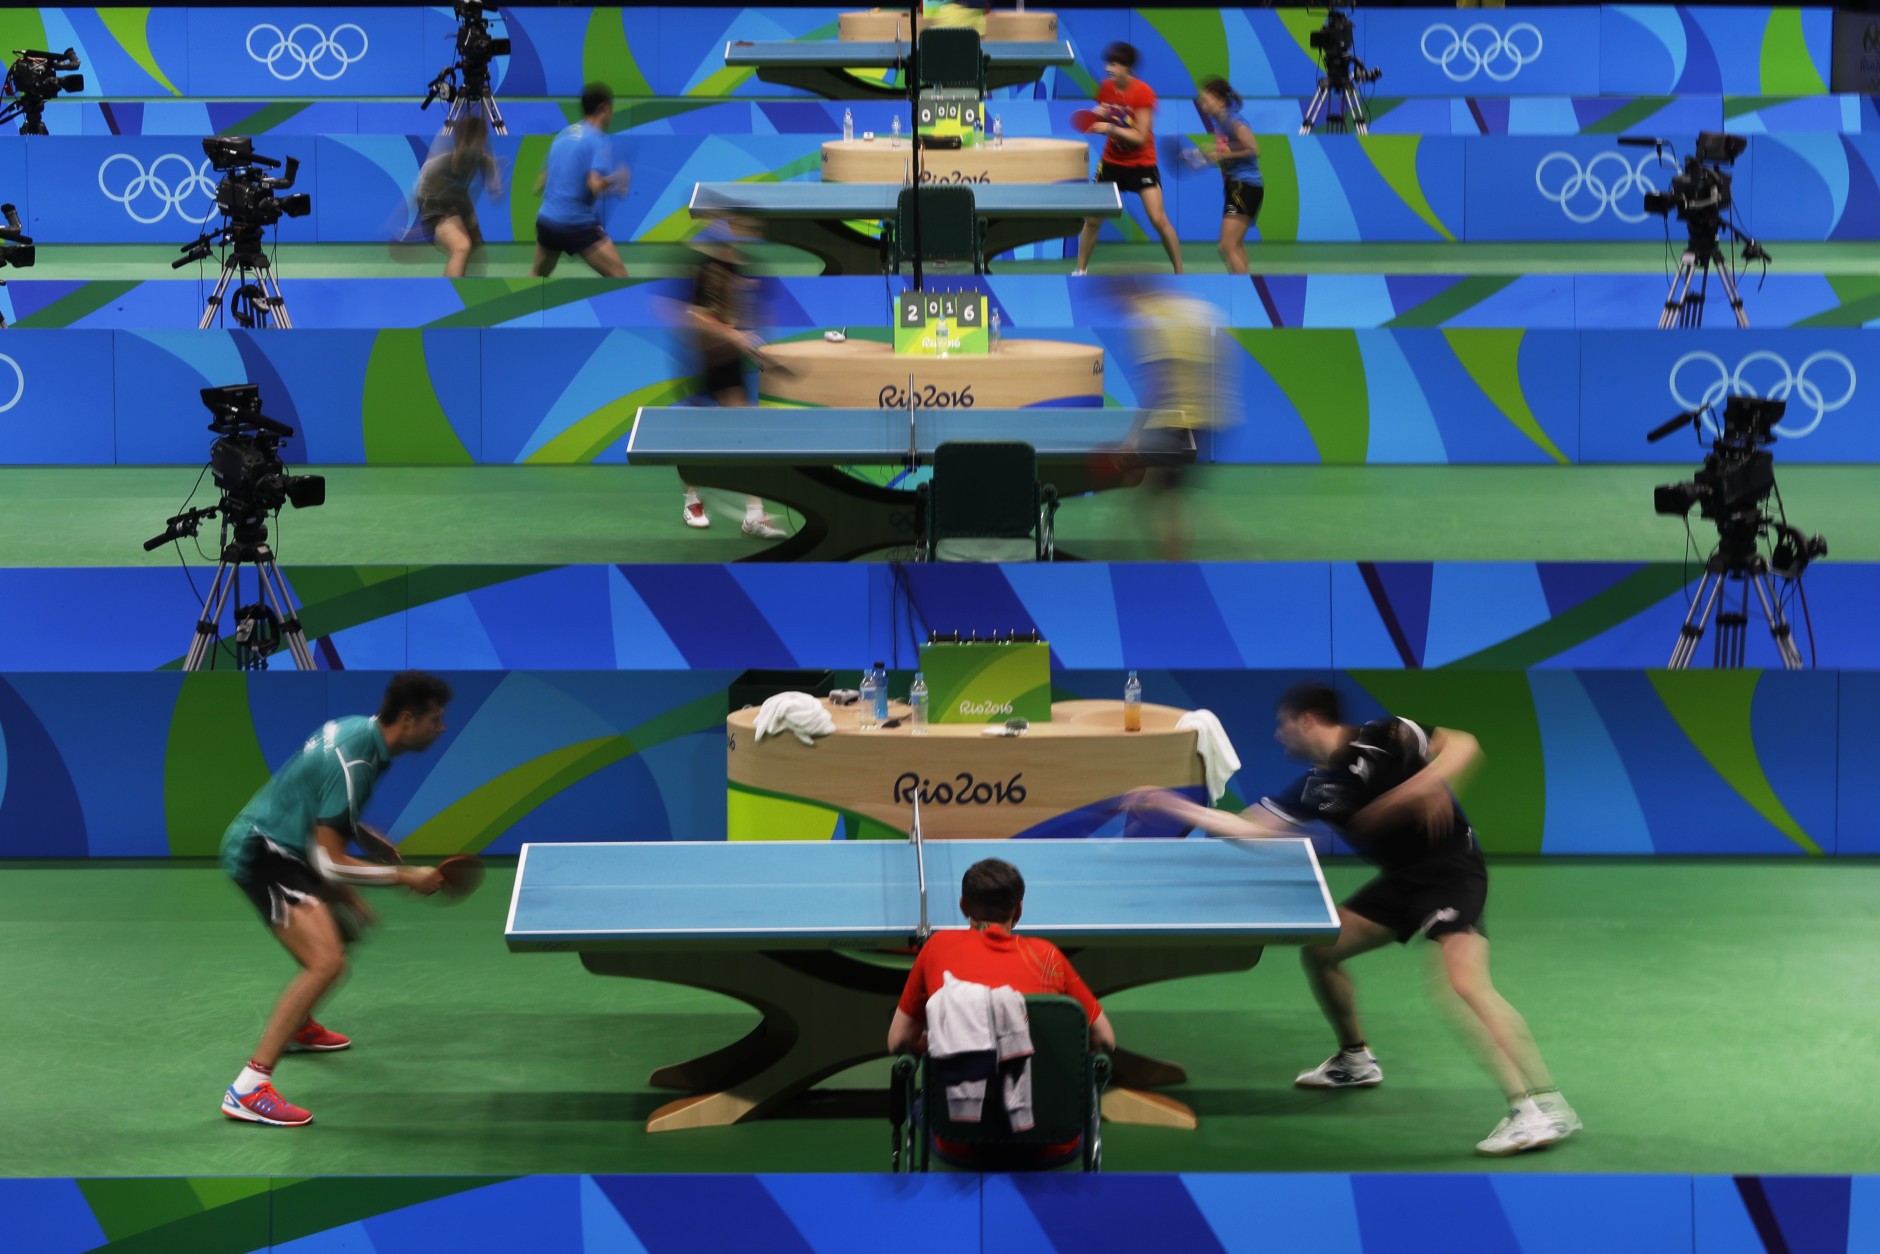 Table tennis players take part in a training session at the at the Riocentro ahead the 2016 Summer Olympics in Rio de Janeiro, Brazil, Wednesday, Aug. 3, 2016. (AP Photo/Petros Giannakouris)